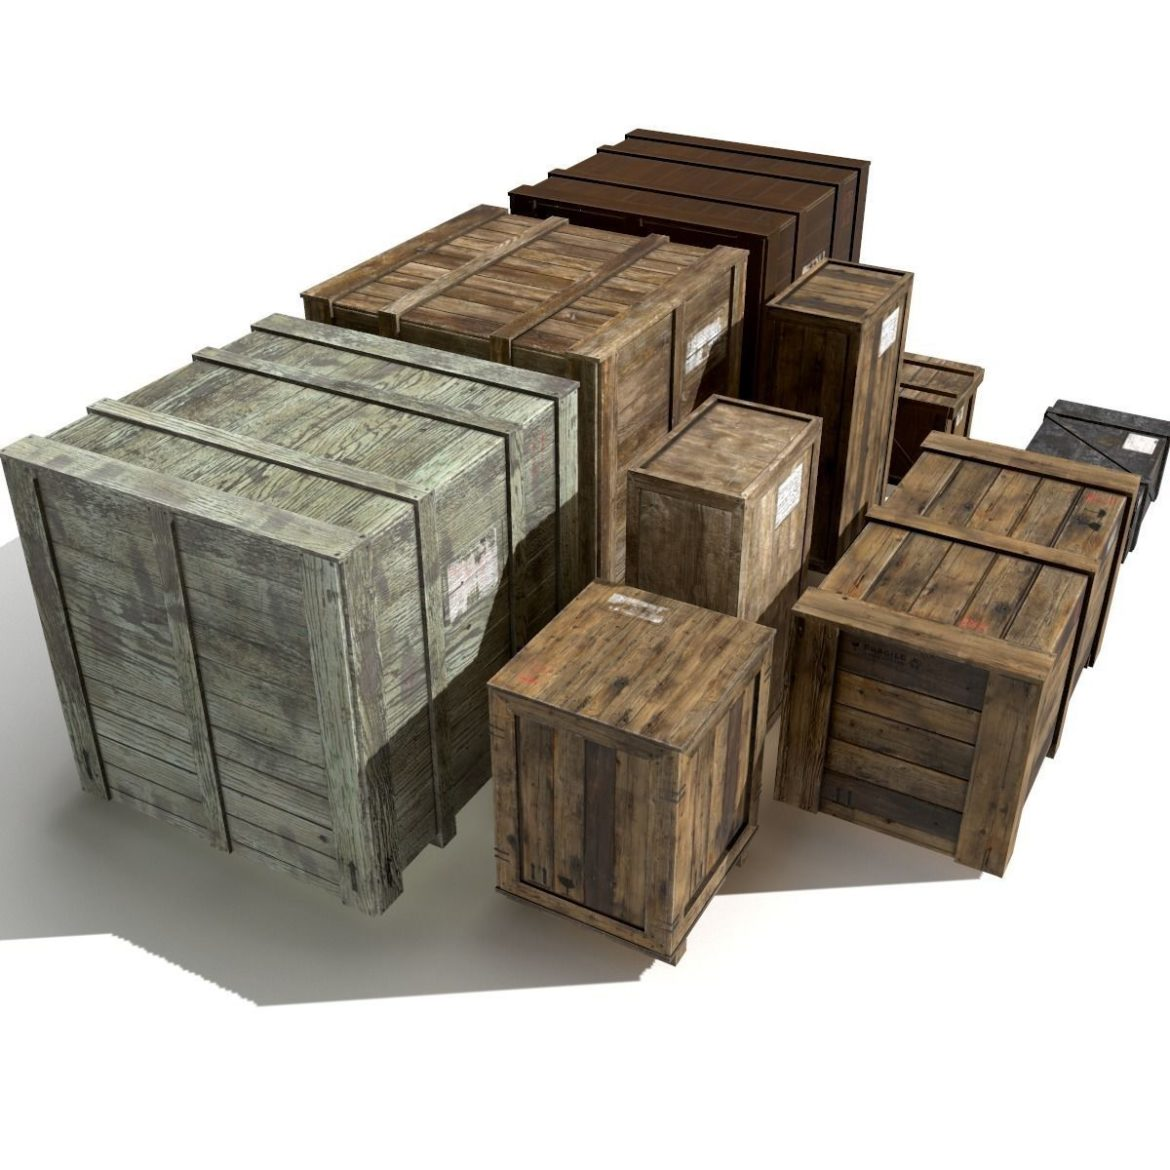 transport crates pack 3 3d model fbx obj 319433